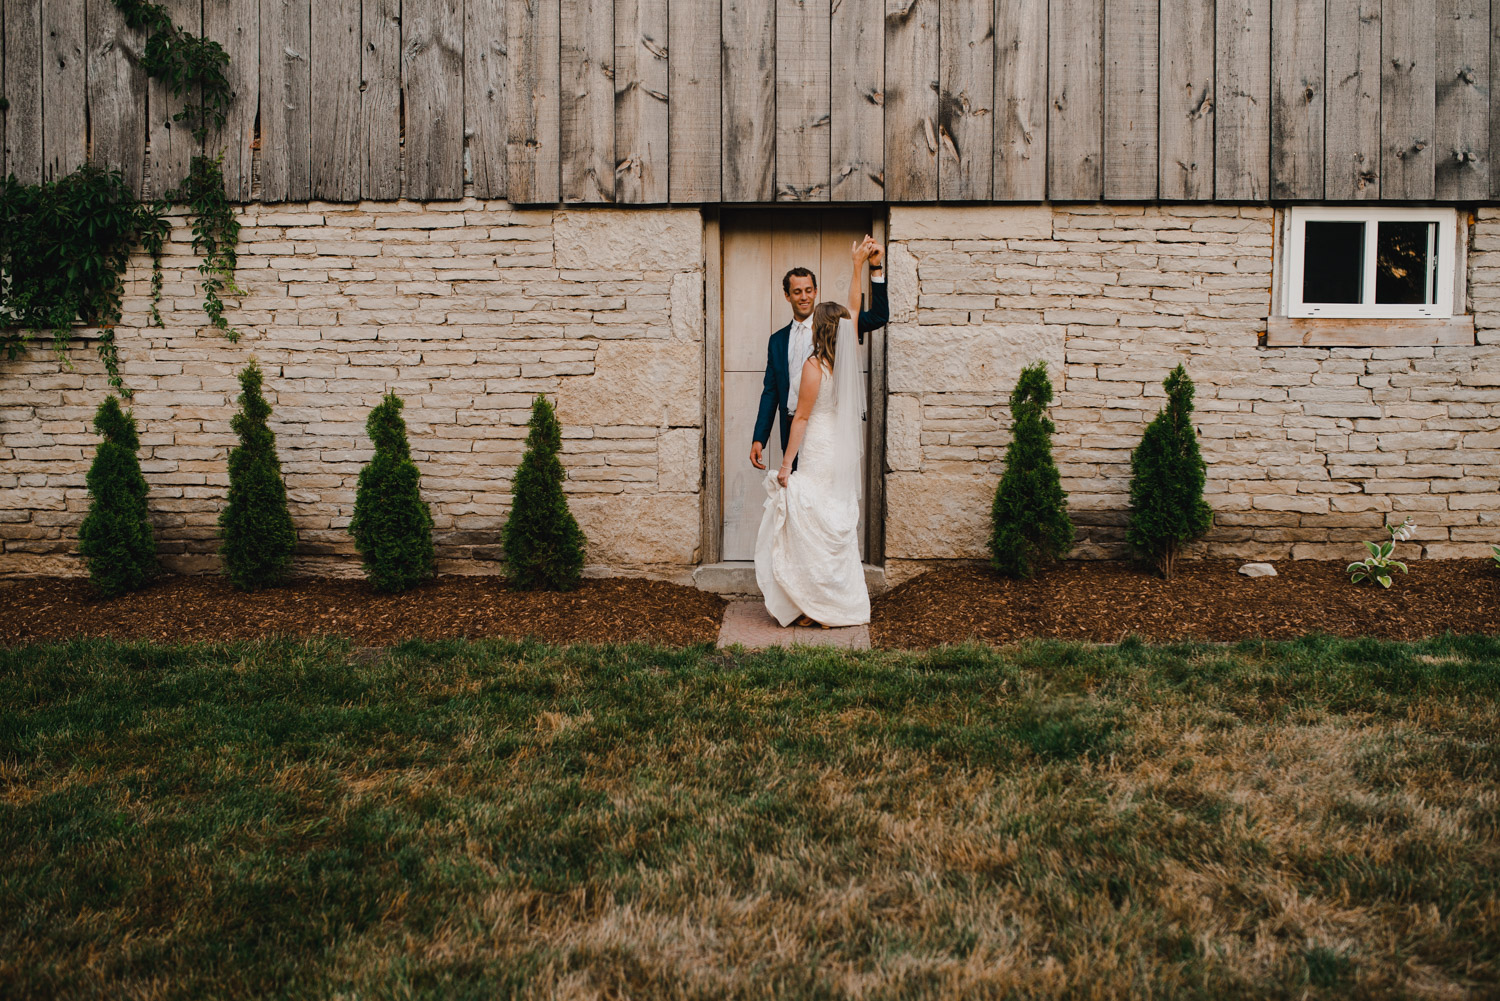 The bride and groom share a dance beside the barn at White Spruce Acres